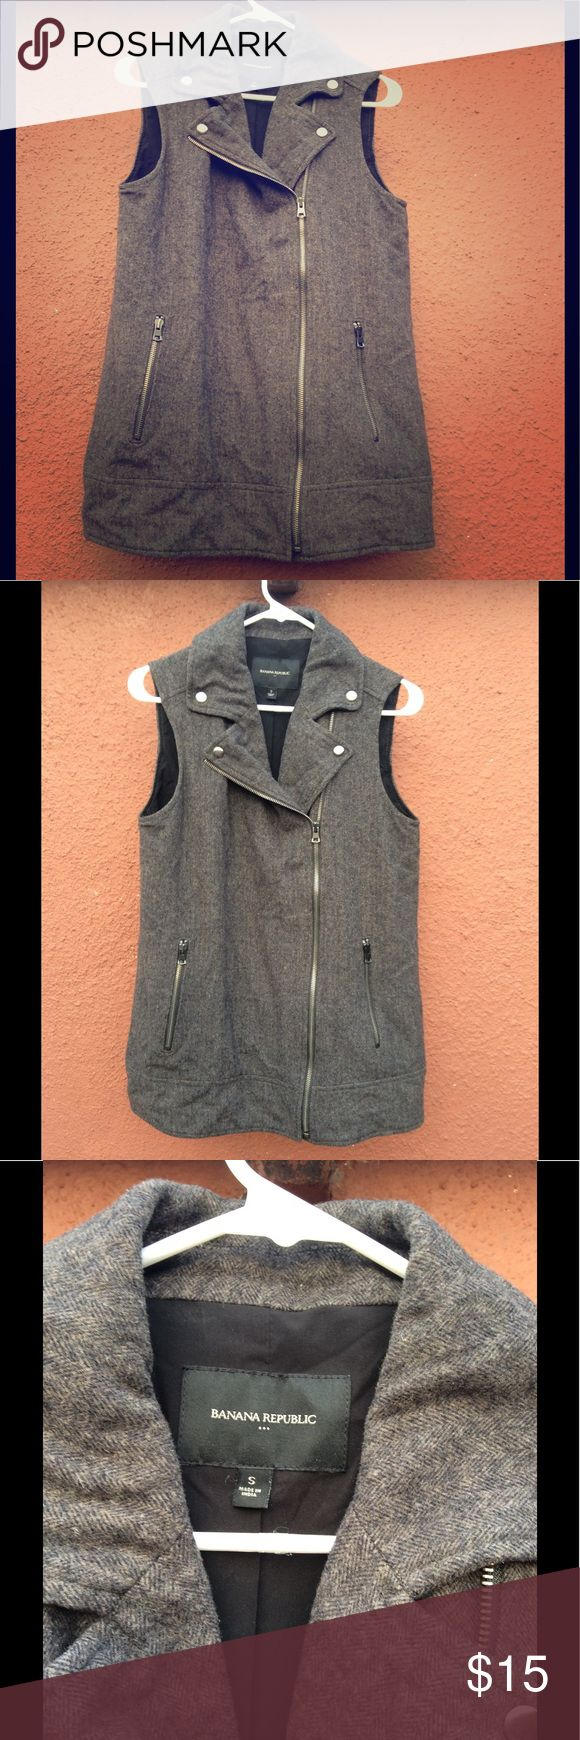 Banana Republic Long Vest Biker style long wool vest. Throw it over a blouse and your good. Silver hard wear. Banana Republic Jackets & Coats Vests